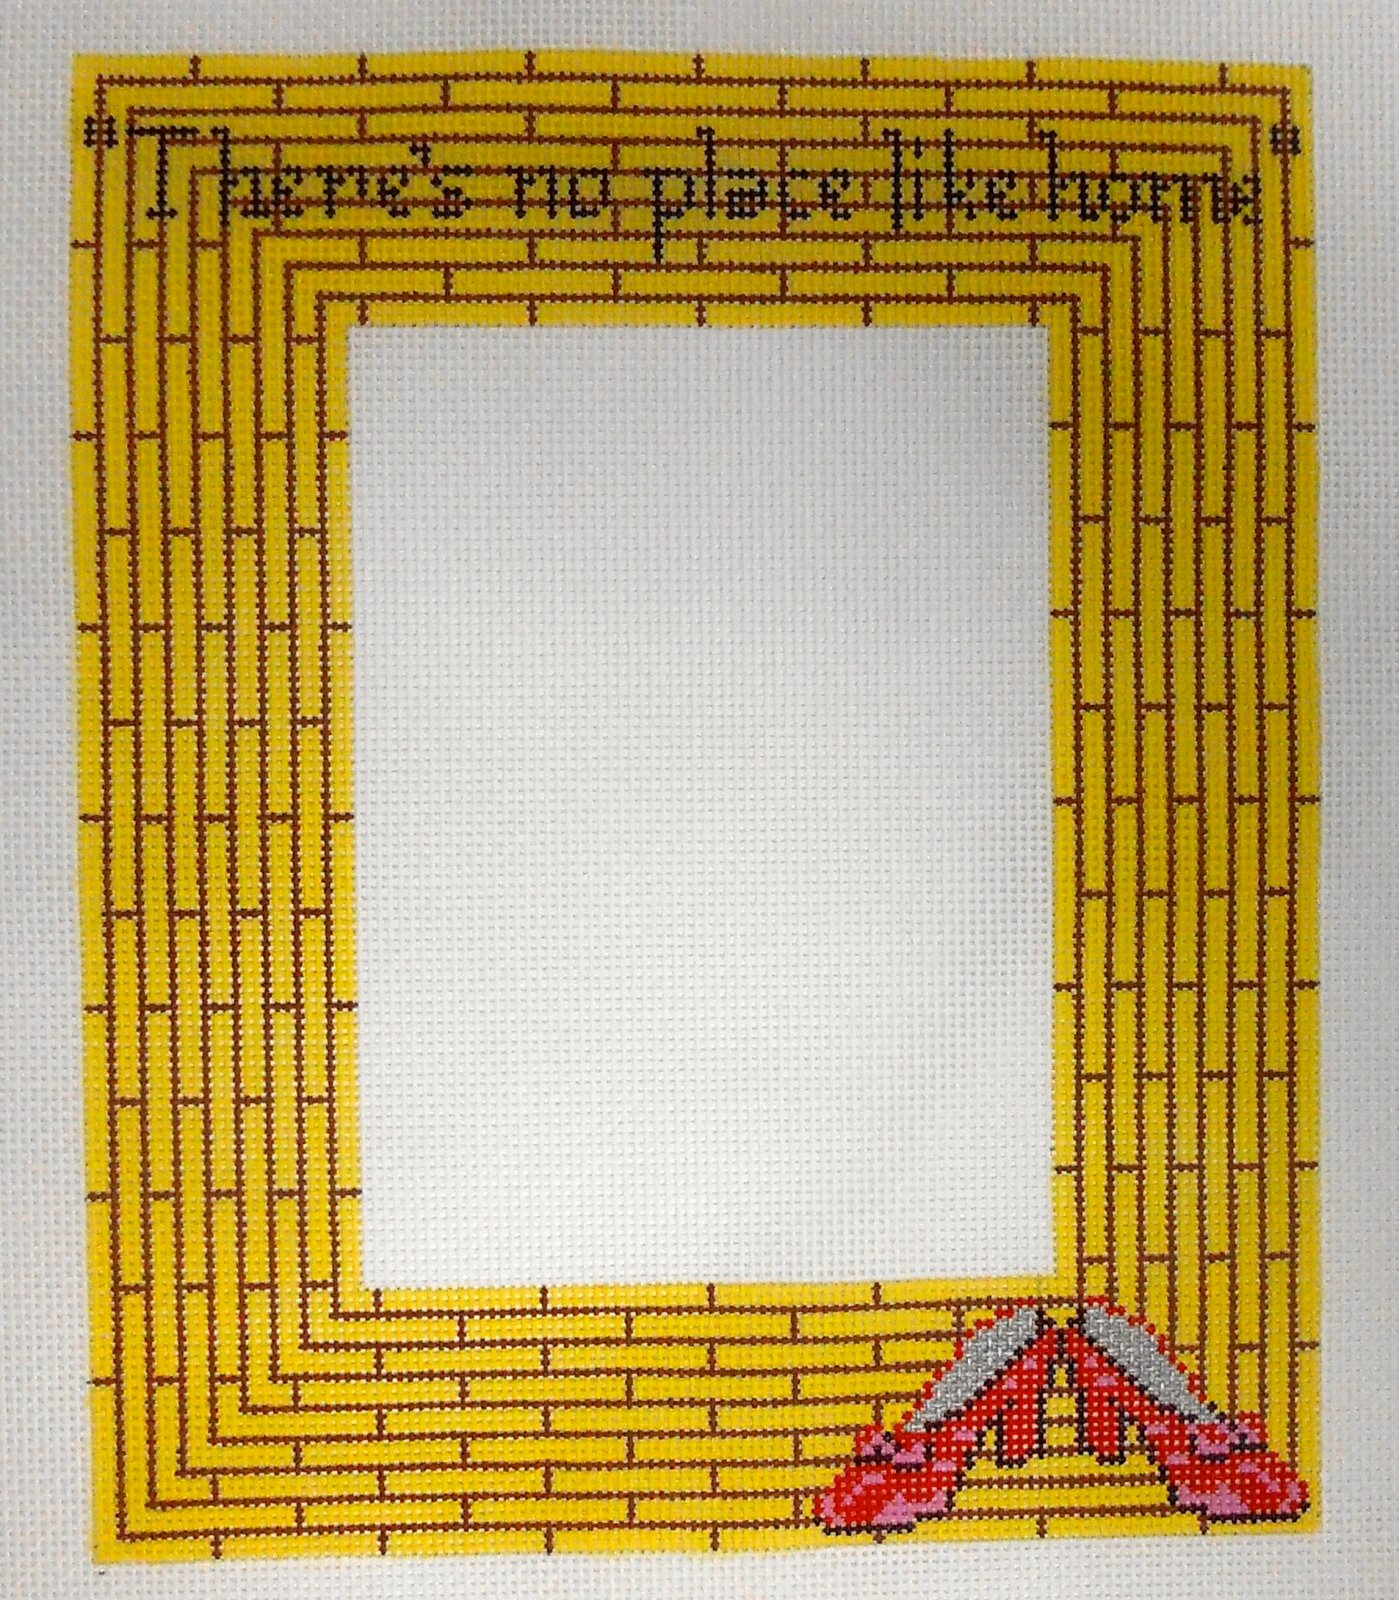 There's No Place Like Home Frame